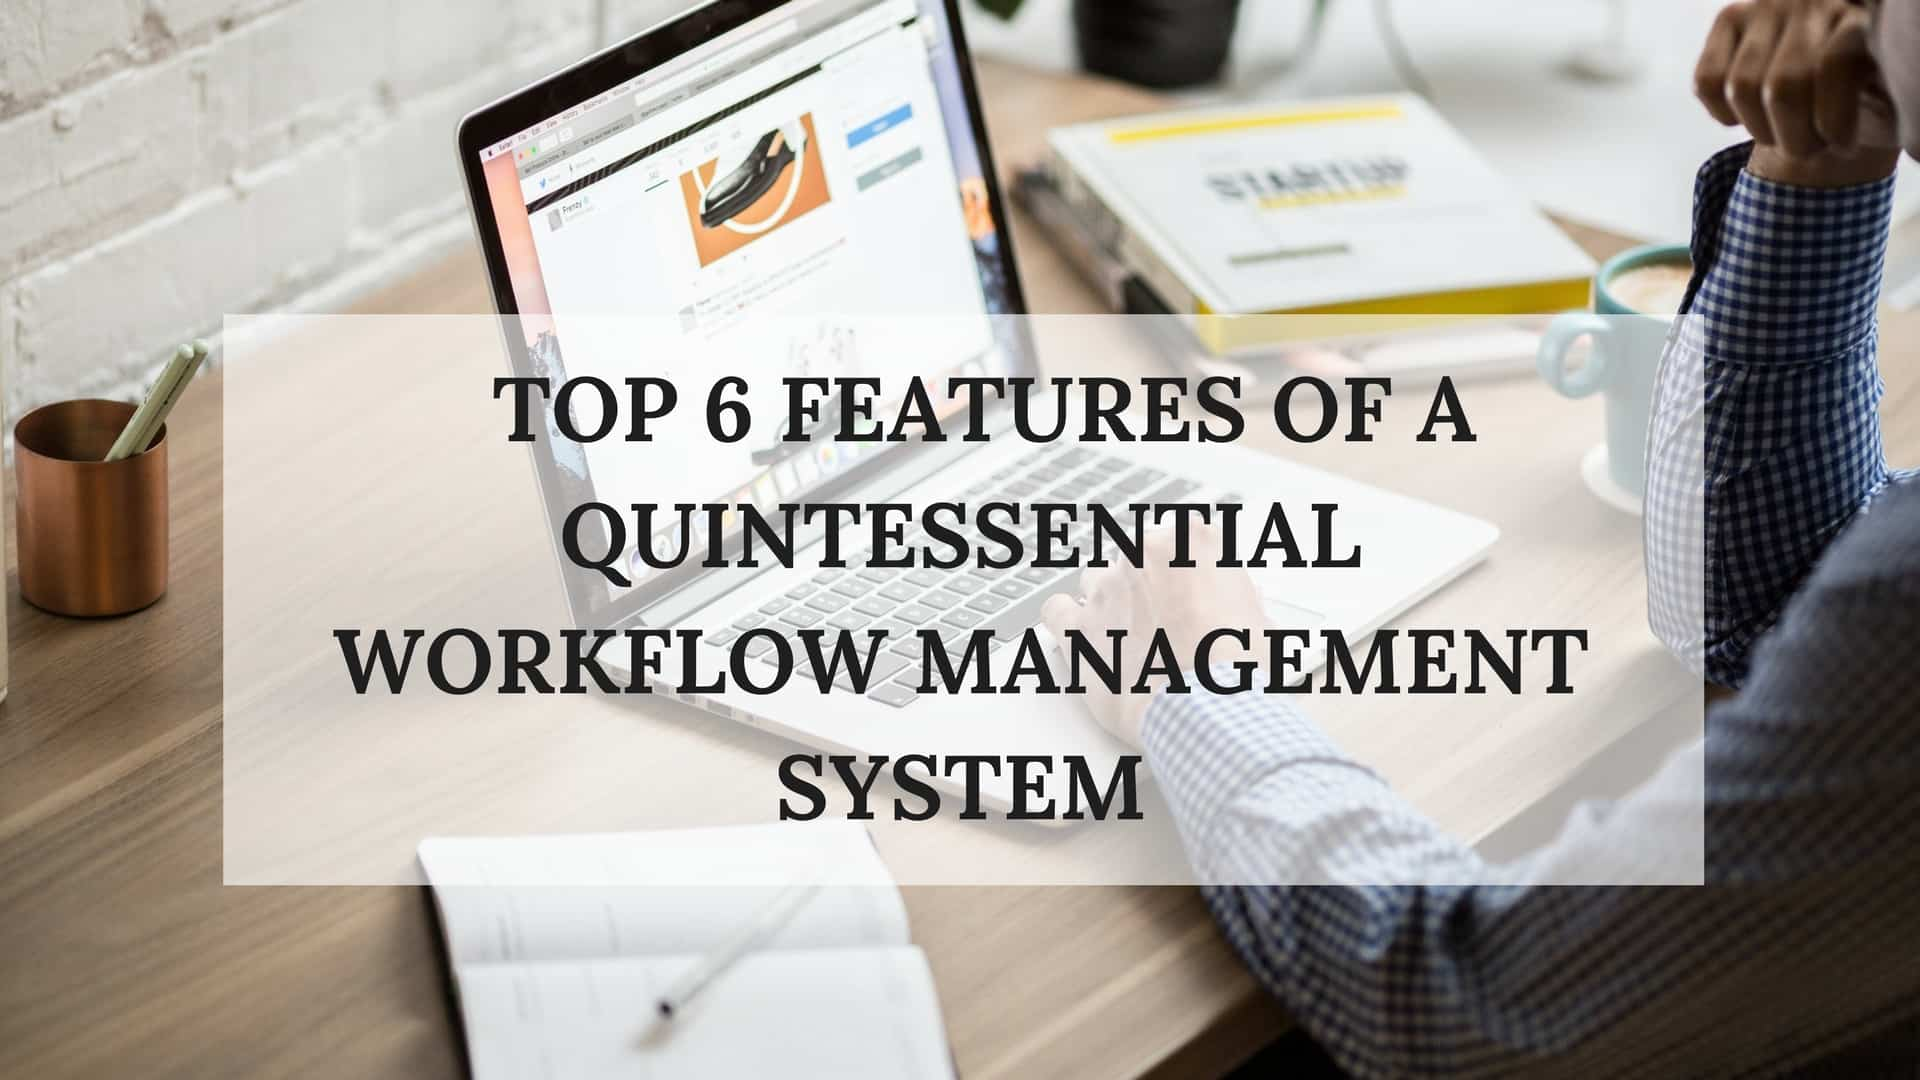 Top 6 features of a quintessential workflow management system